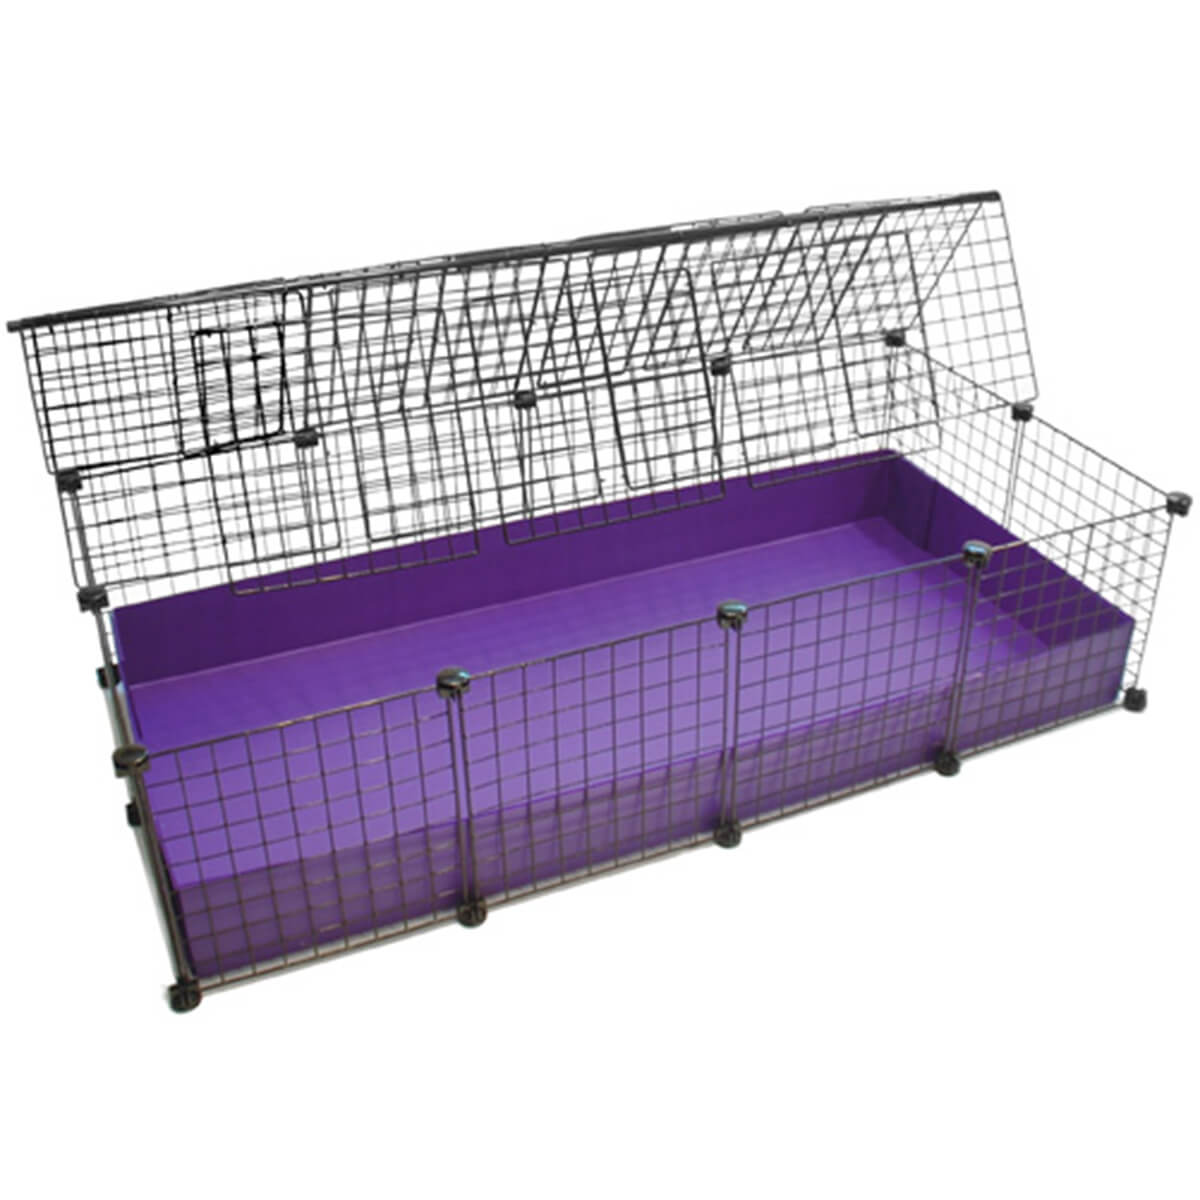 Large 2x4 grids covered standard covered cages c c for Where to get c c cages